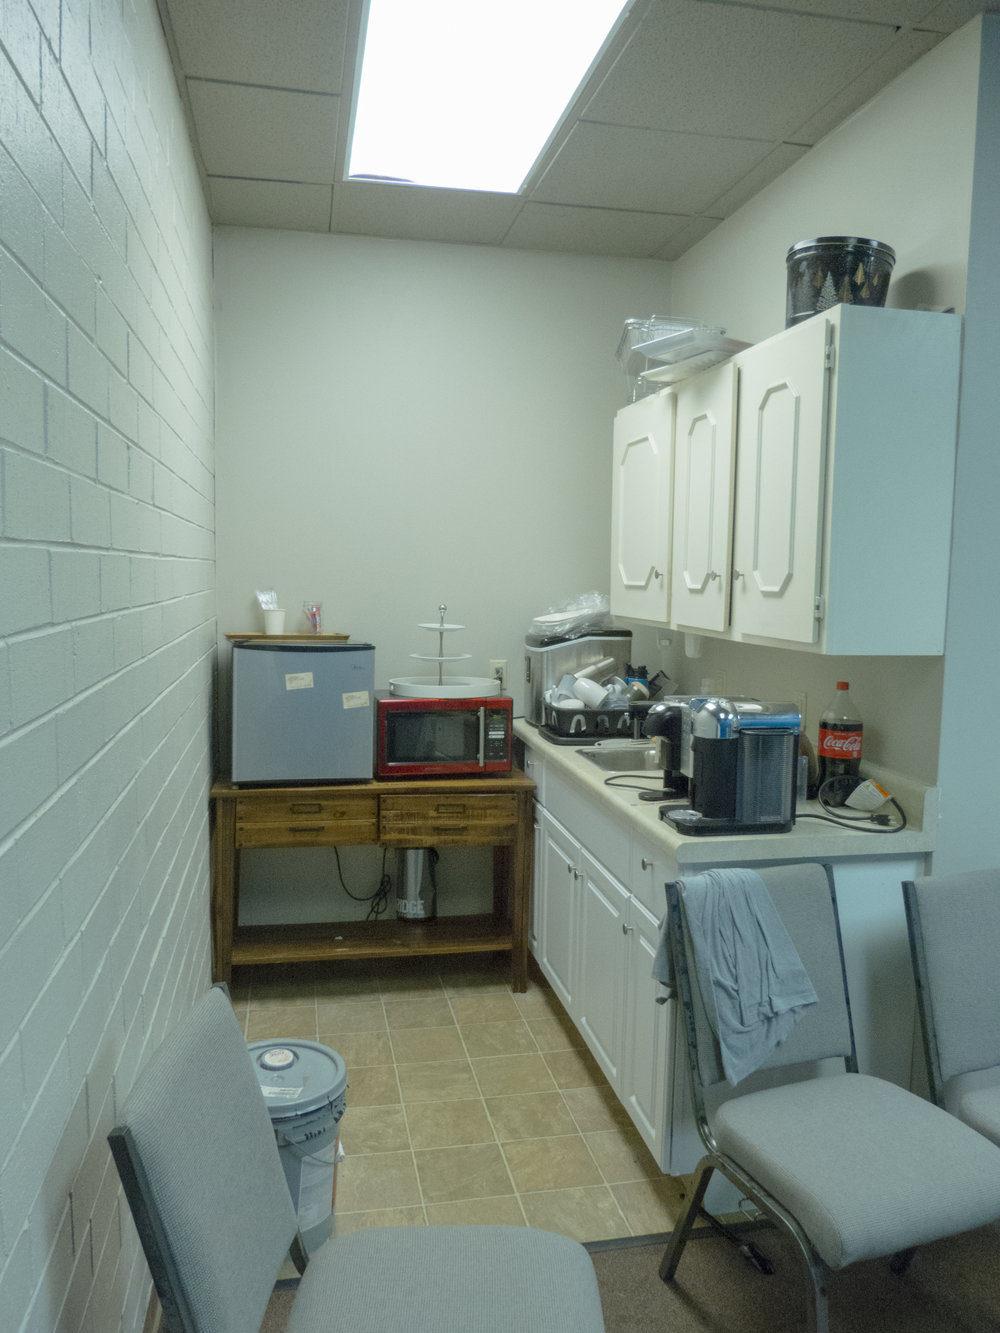 A kitchen.jpg